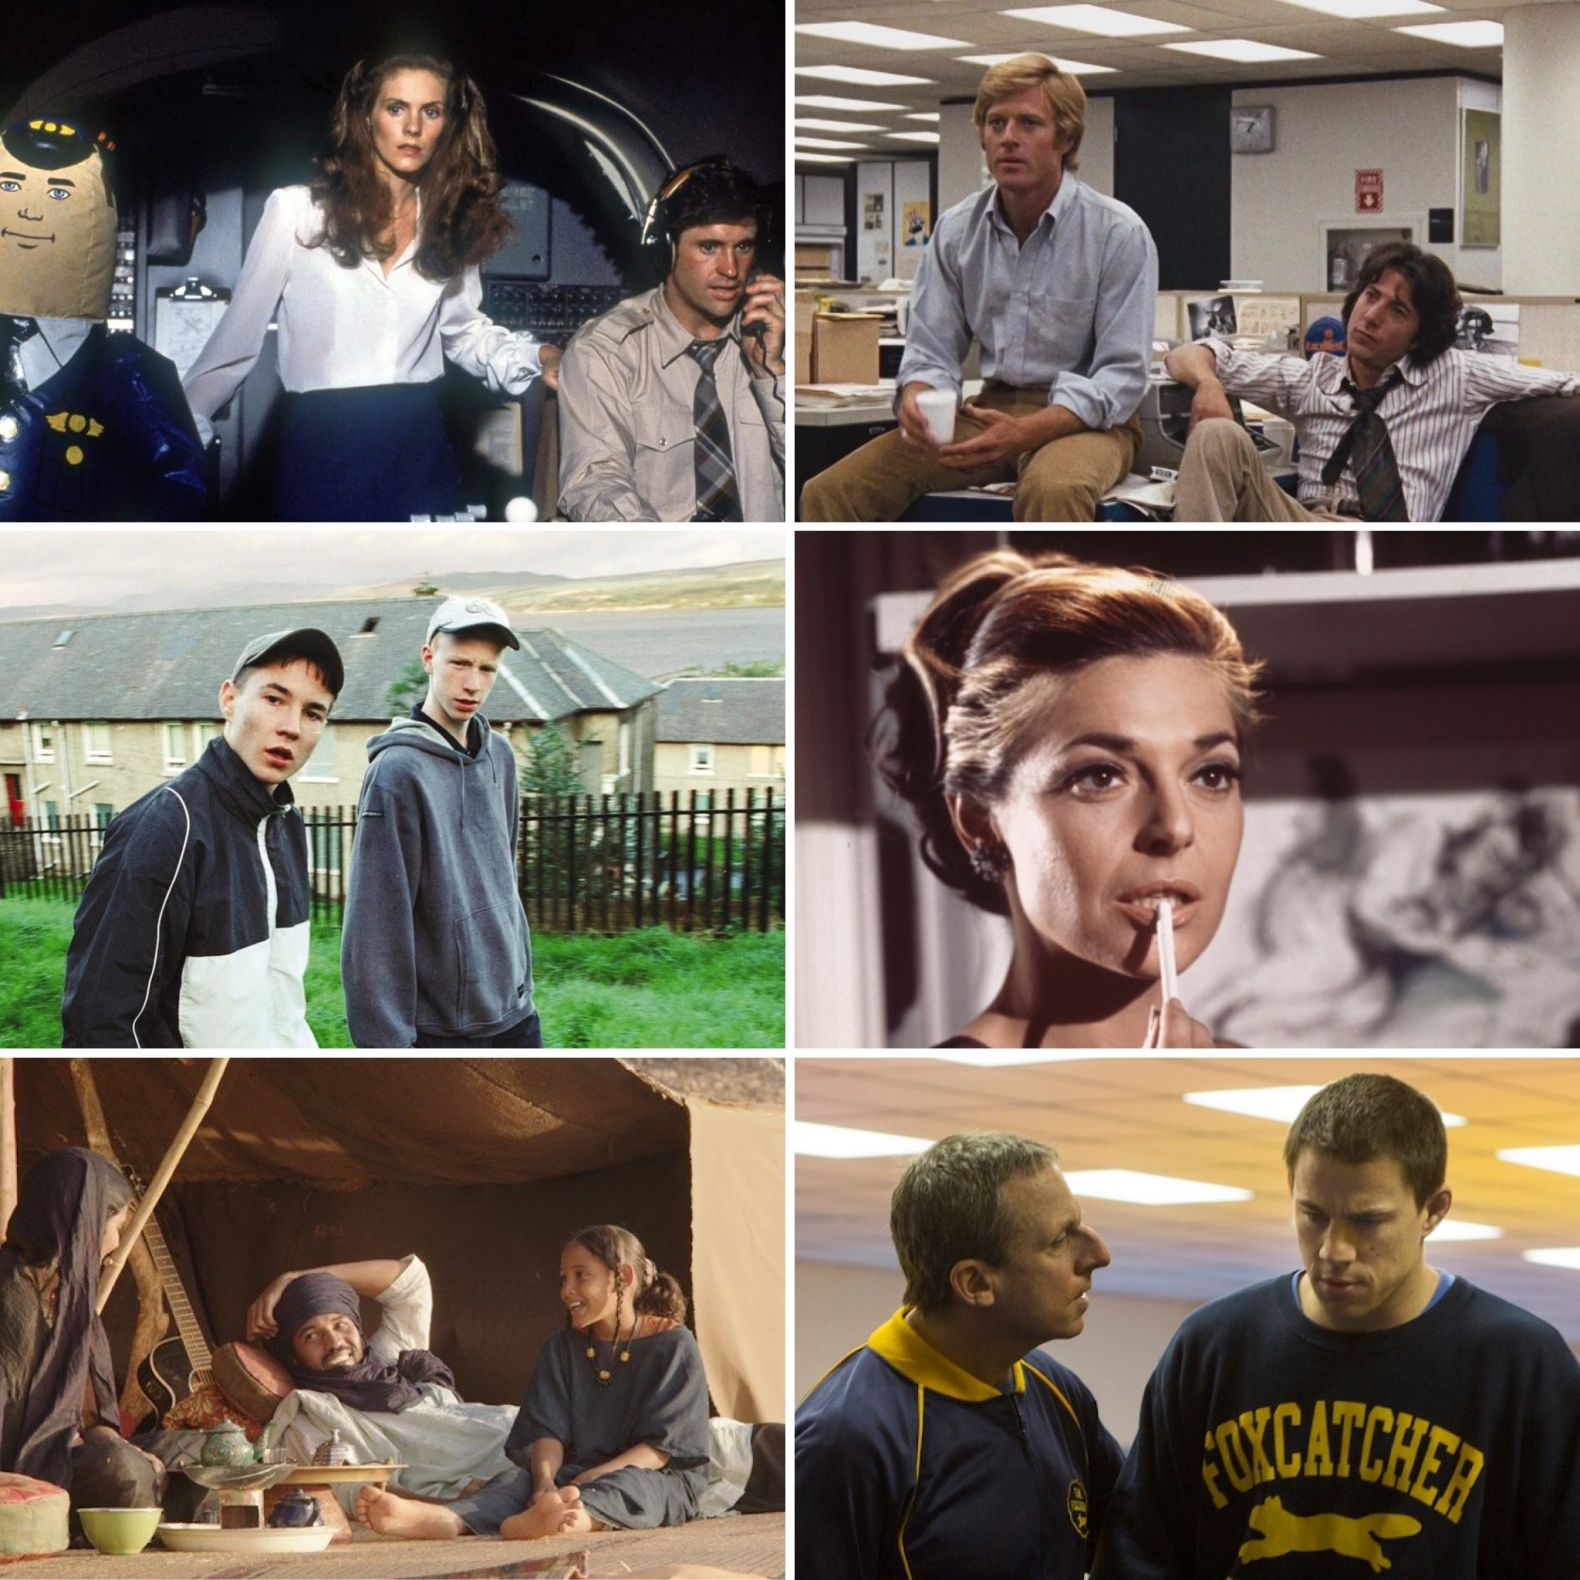 Duke Box #44: Our Guide to the Best Films on TV